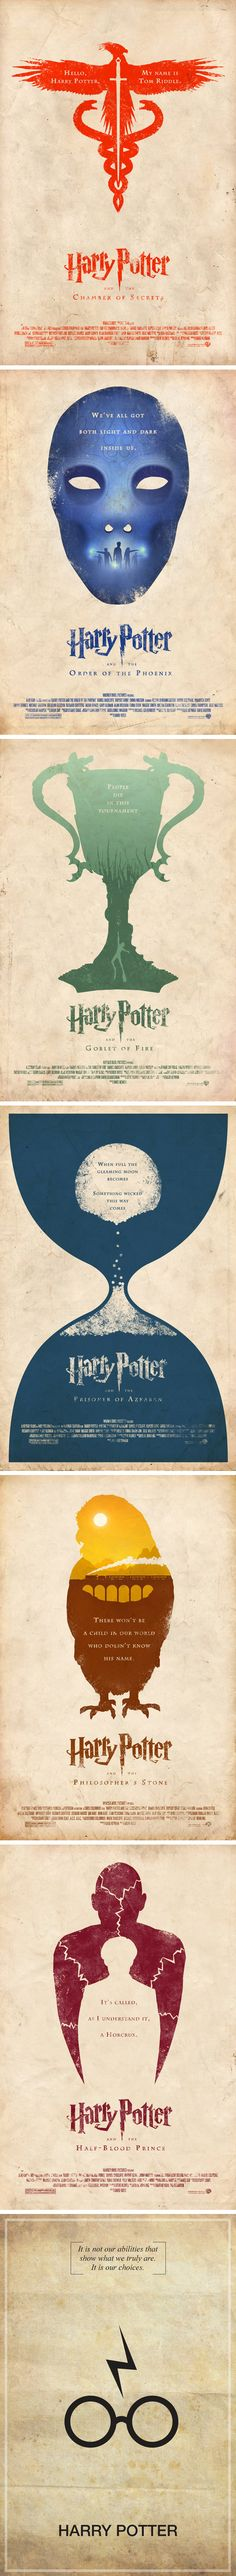 Alternate Harry Potter movie posters. I love the Prisoner one!